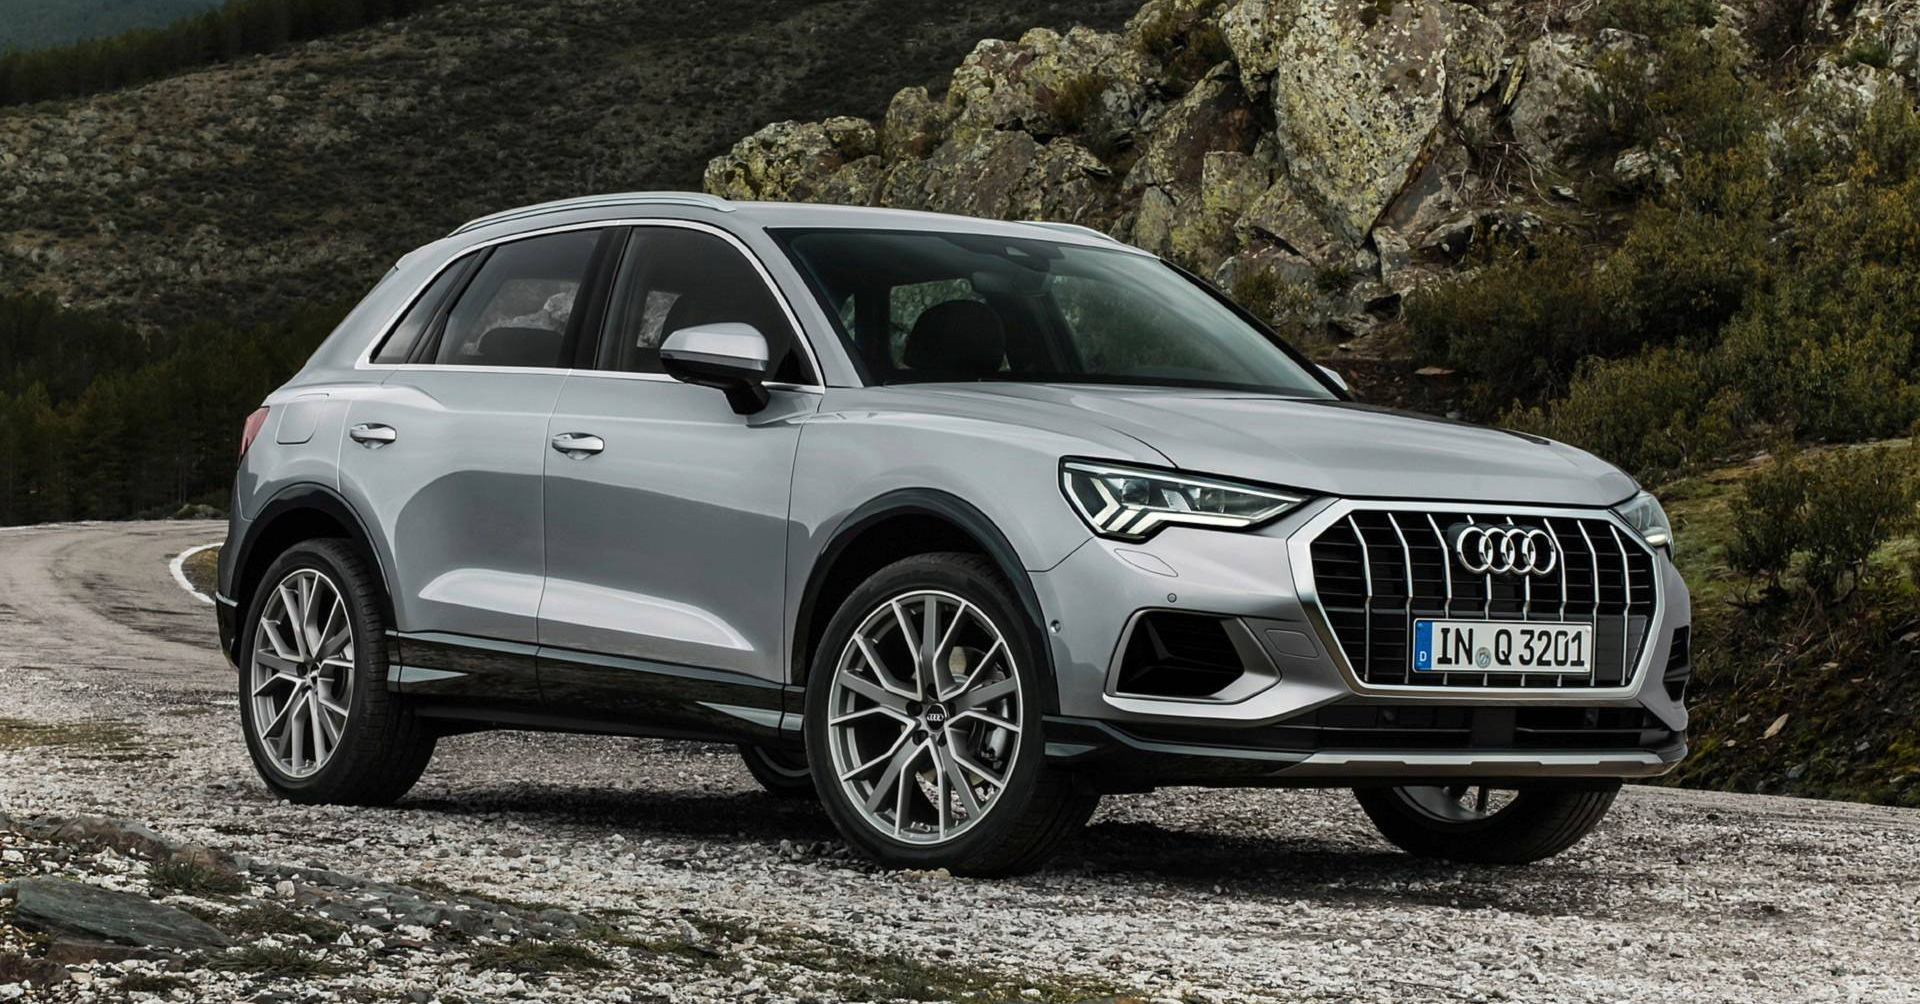 2019 Audi Q3: Everything You Want in a Small Package